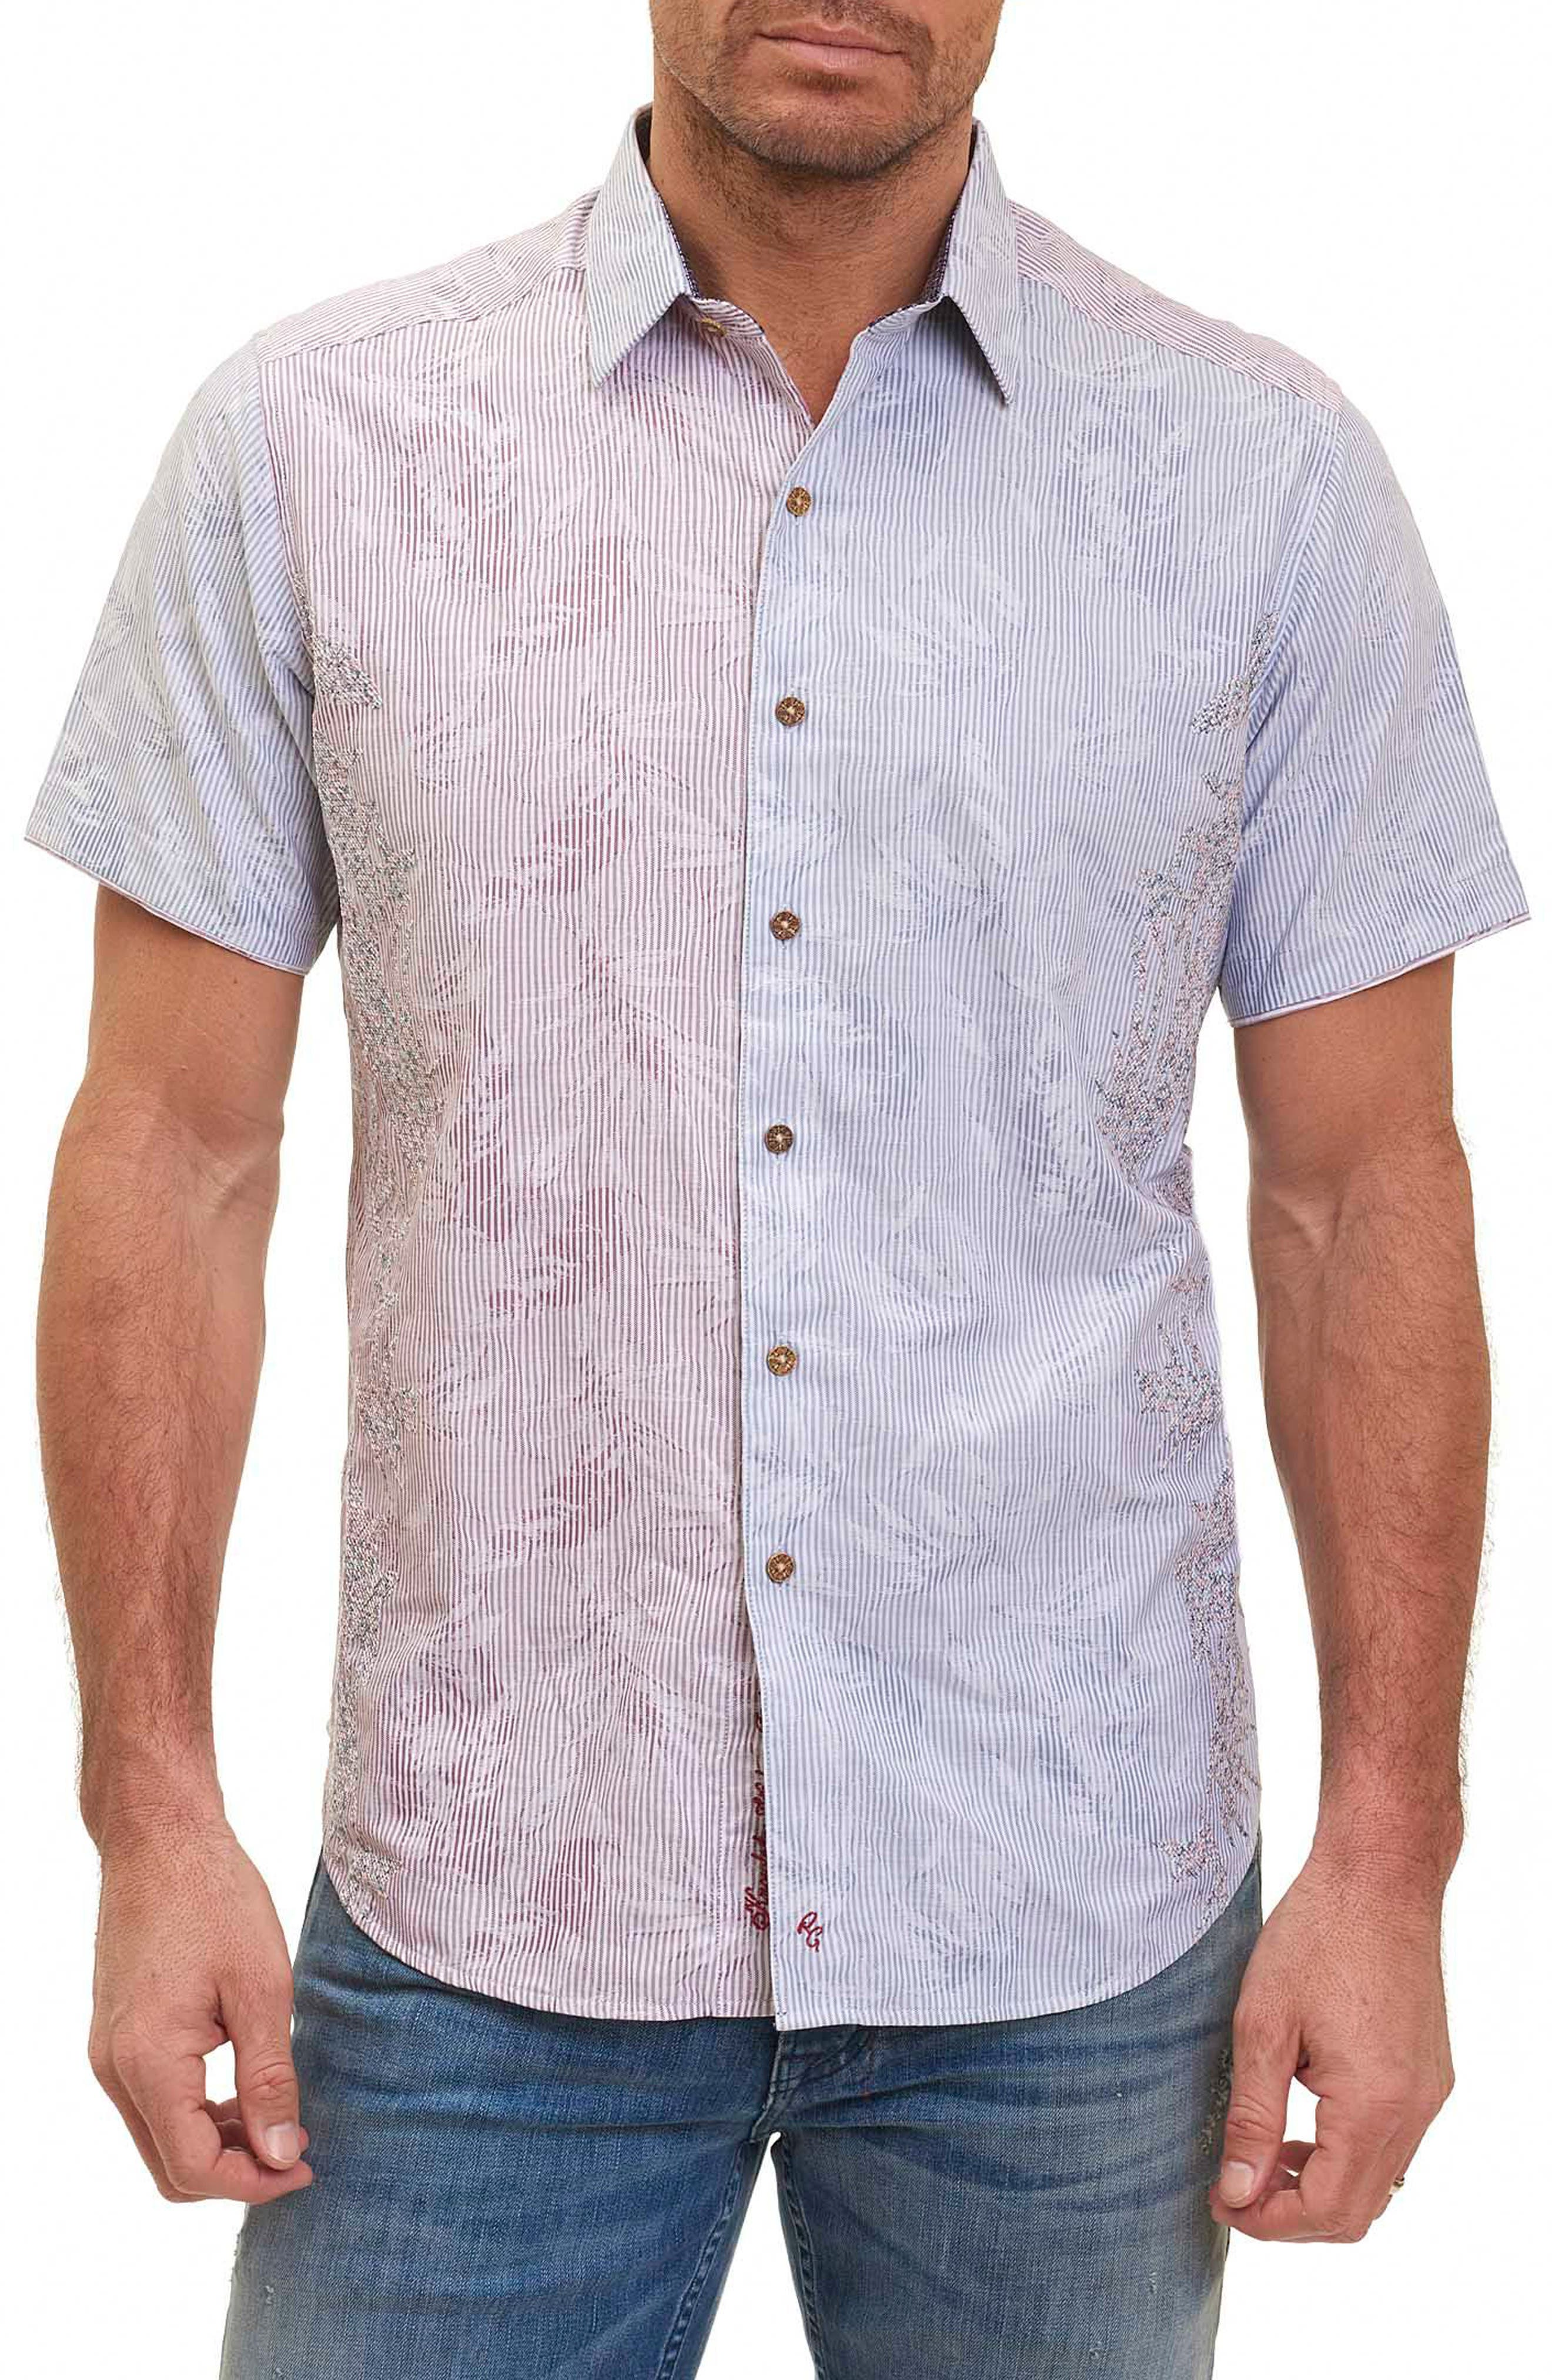 Alternate Image 1 Selected - Robert Graham Bundy Boulevard Classic Fit Print Sport Shirt (Limited Edition)